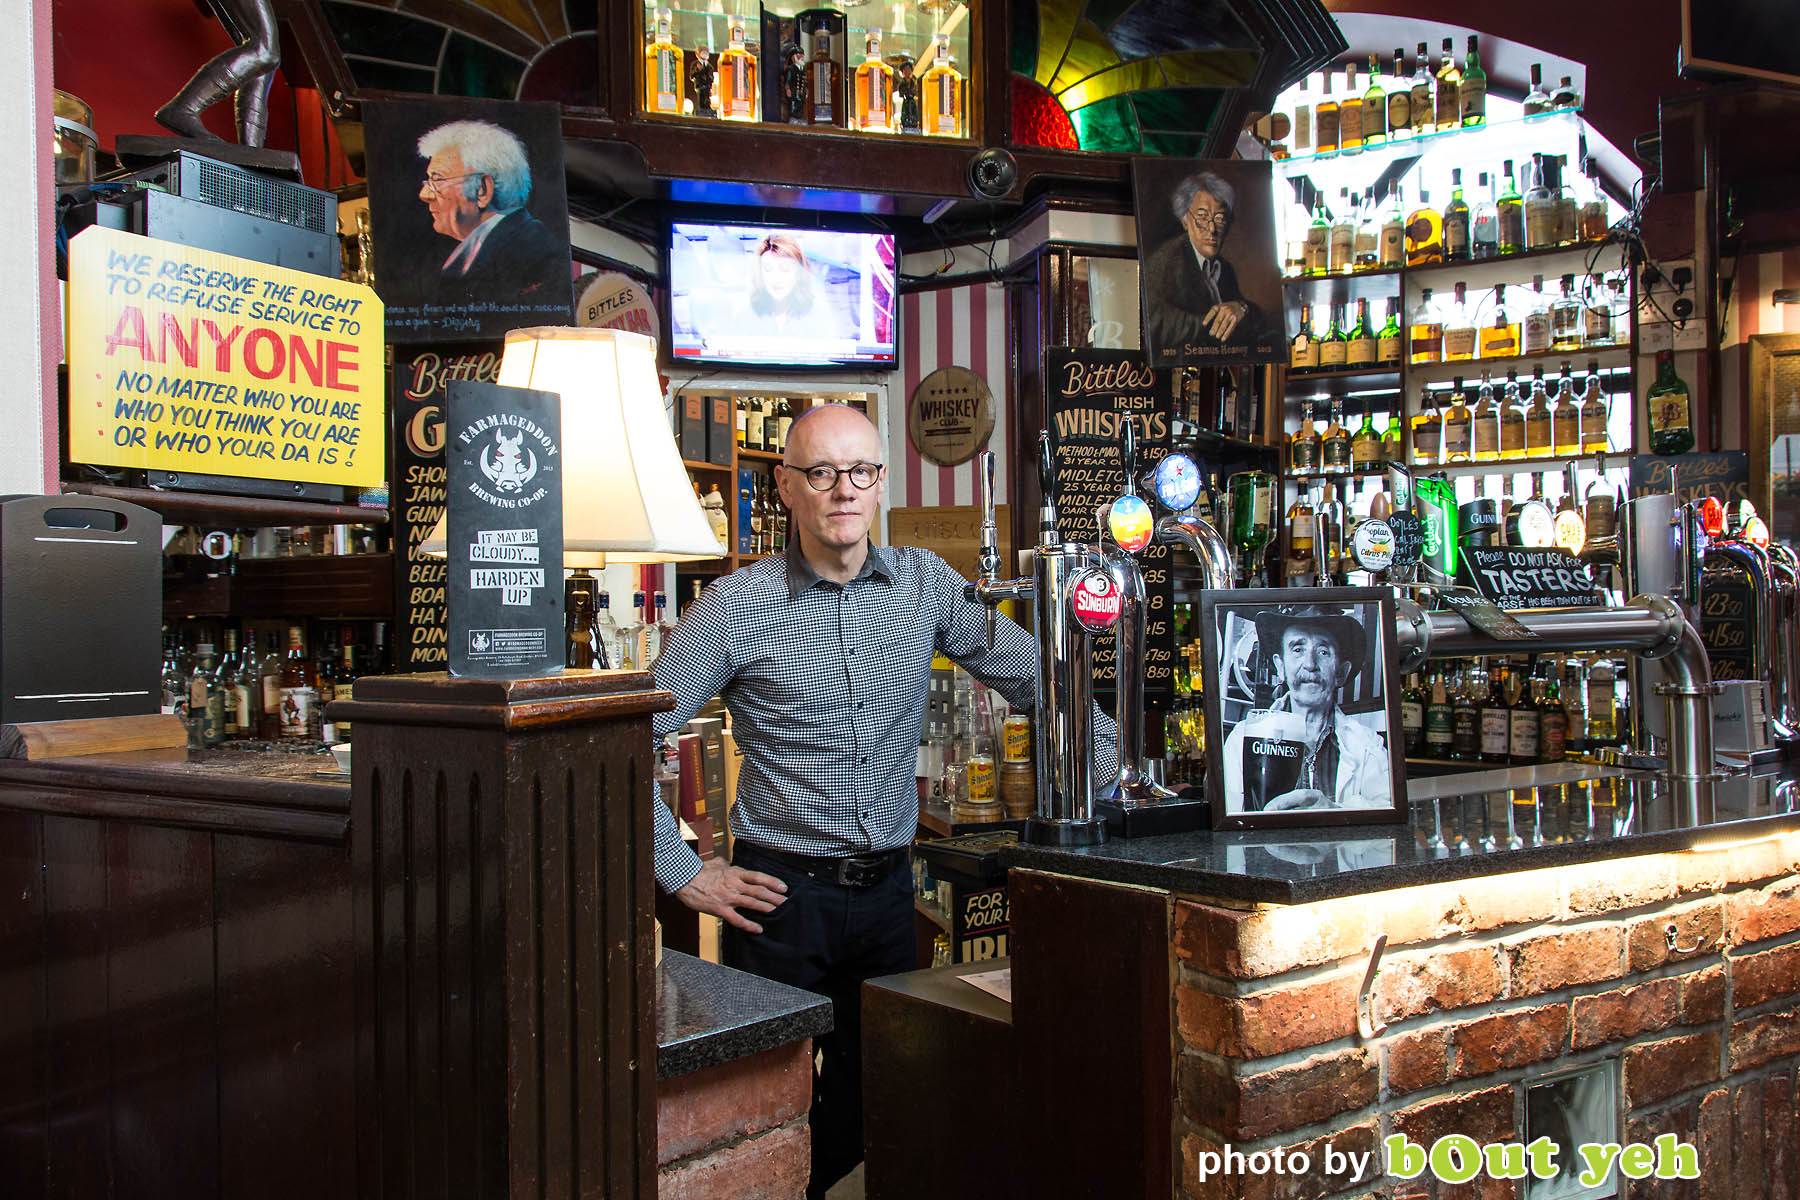 John Bittles at Bittles Bar by Bout Yeh photographers Belfast - Photo 5004. Editorial feature about John Bittles, owner of Bittles Bar, Belfast.